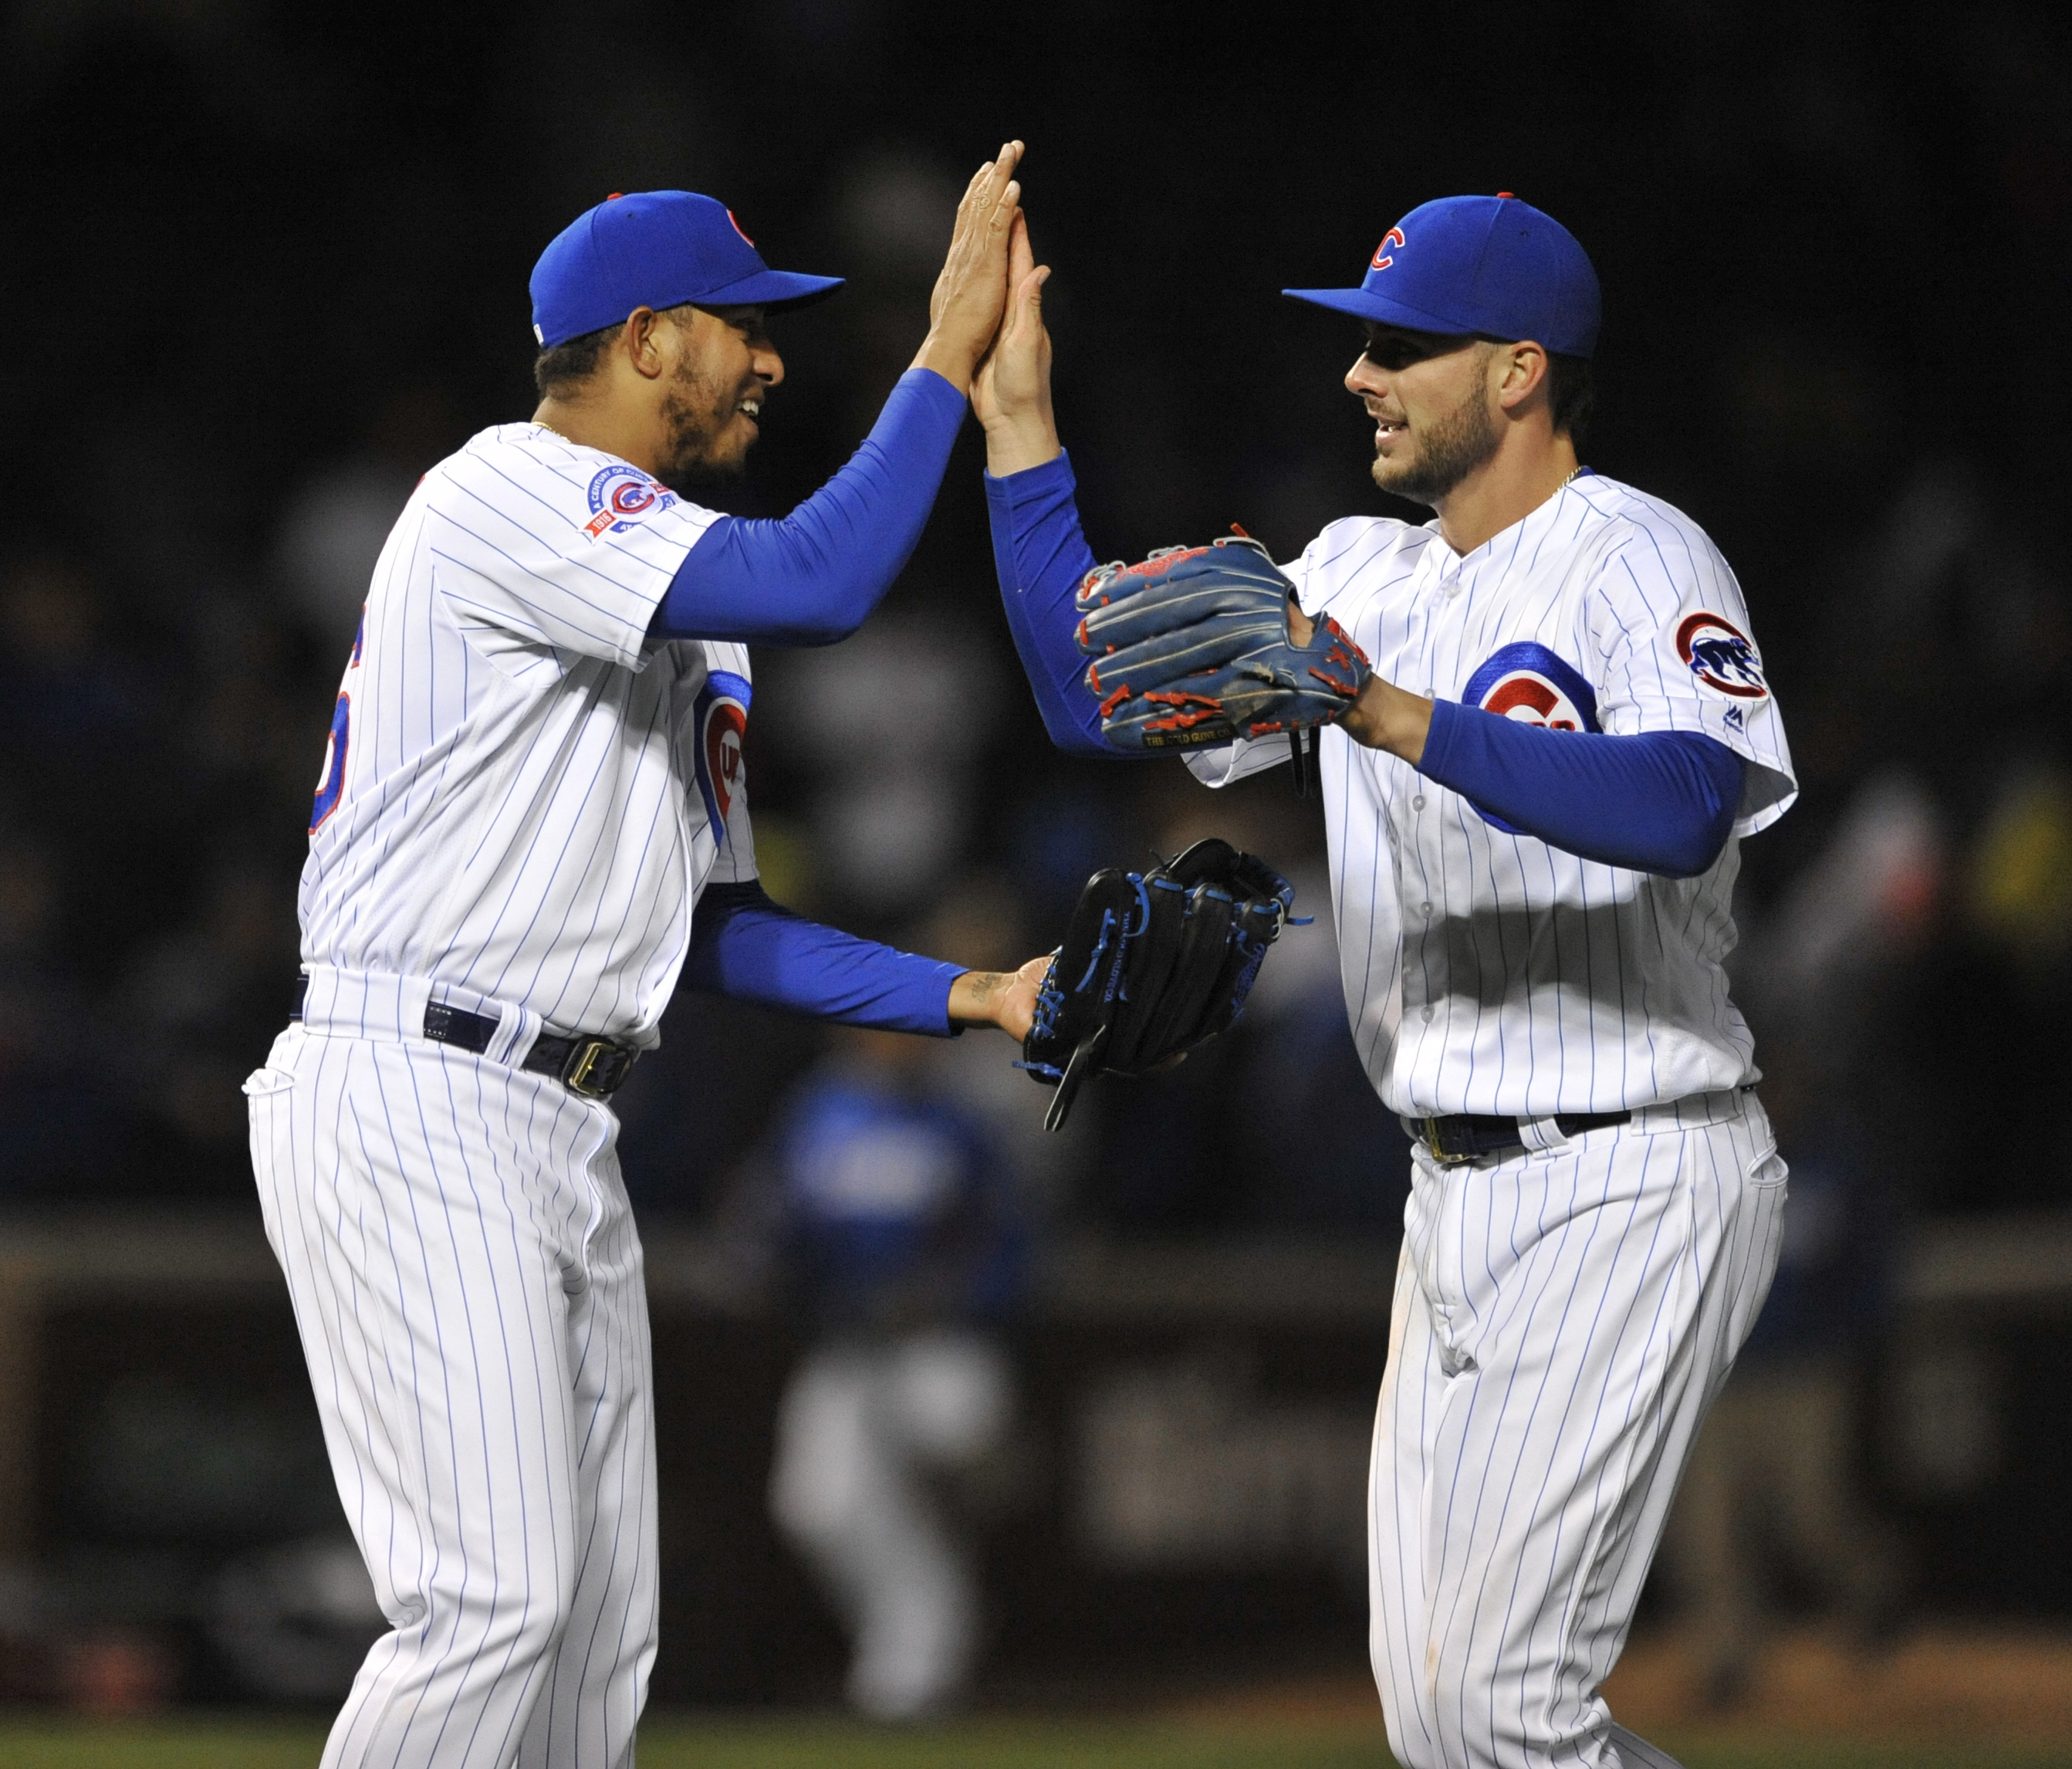 Chicago Cubs closing pitcher Hector Rodon left, celebrates with Kris Bryant right, after the Cubs defeated the Milwaukee Brewers 4-3 in a baseball game Tuesday, April 26, 2016, in Chicago. (AP Photo/Paul Beaty)